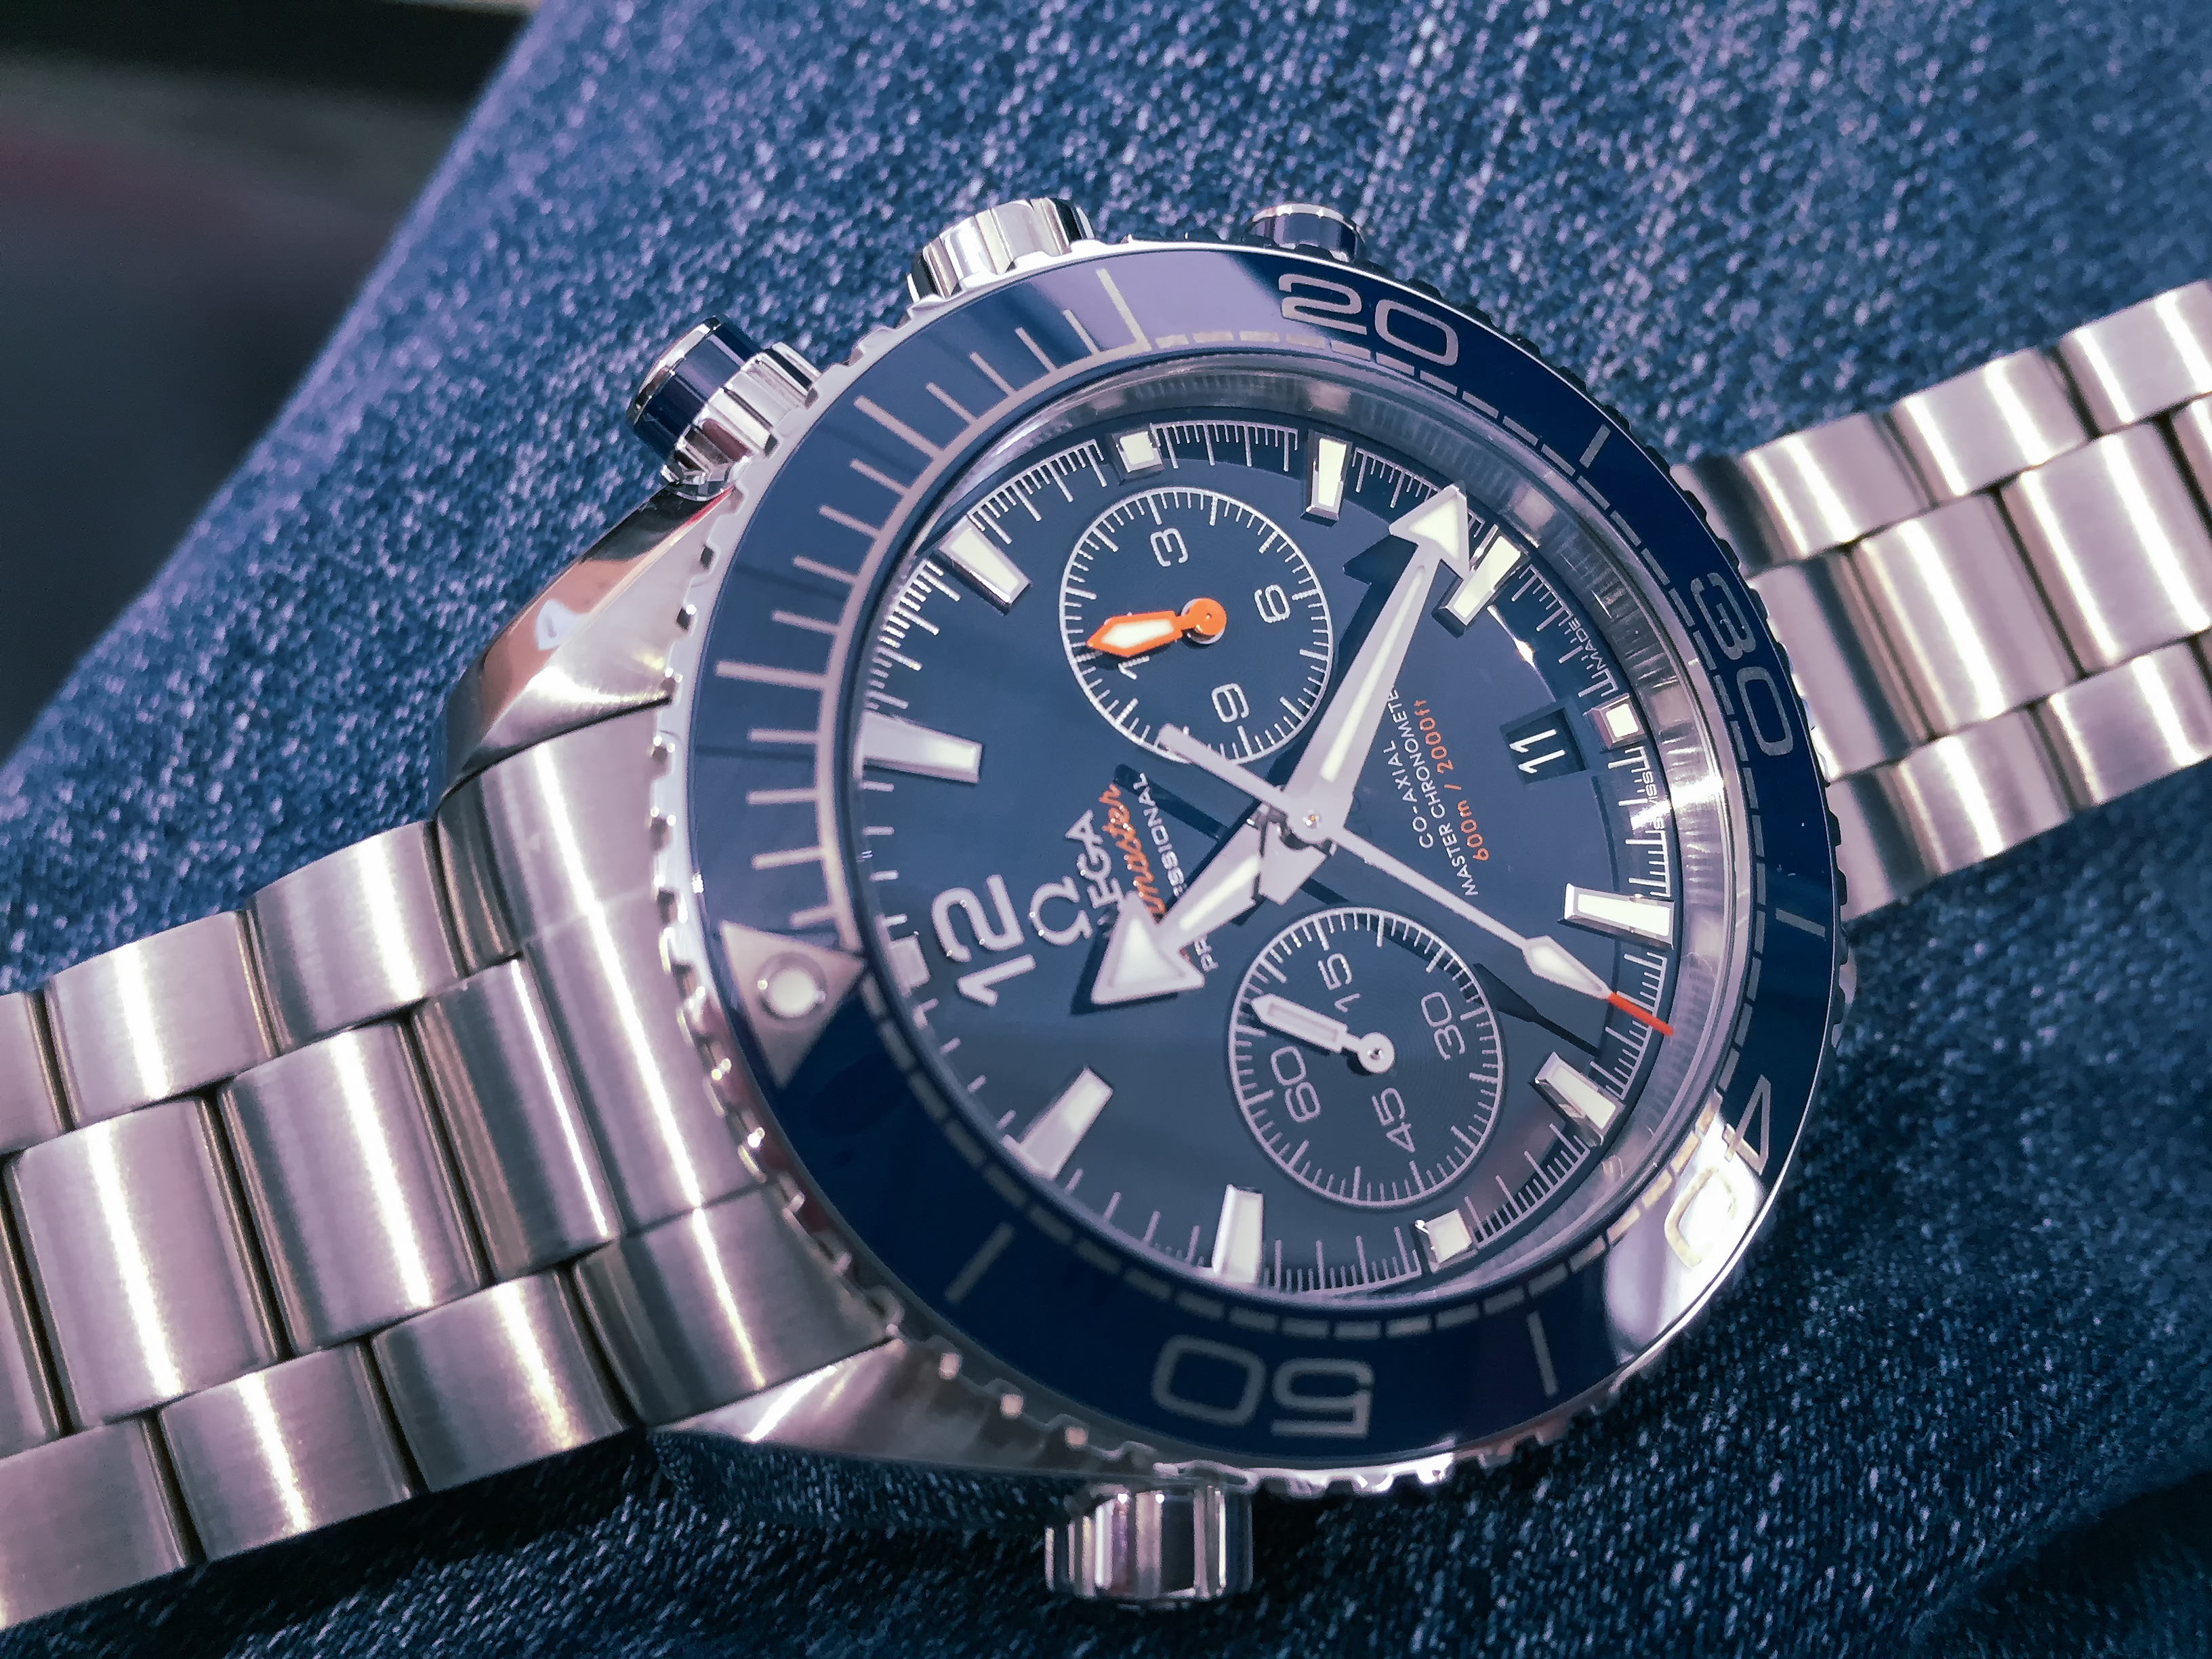 Planet Ocean 600M Omega Co‑Axial Master Chronometer Chronograph 45.5 mm, Omega Planet Ocean Co‑Axial Chronograph 45.5 mm